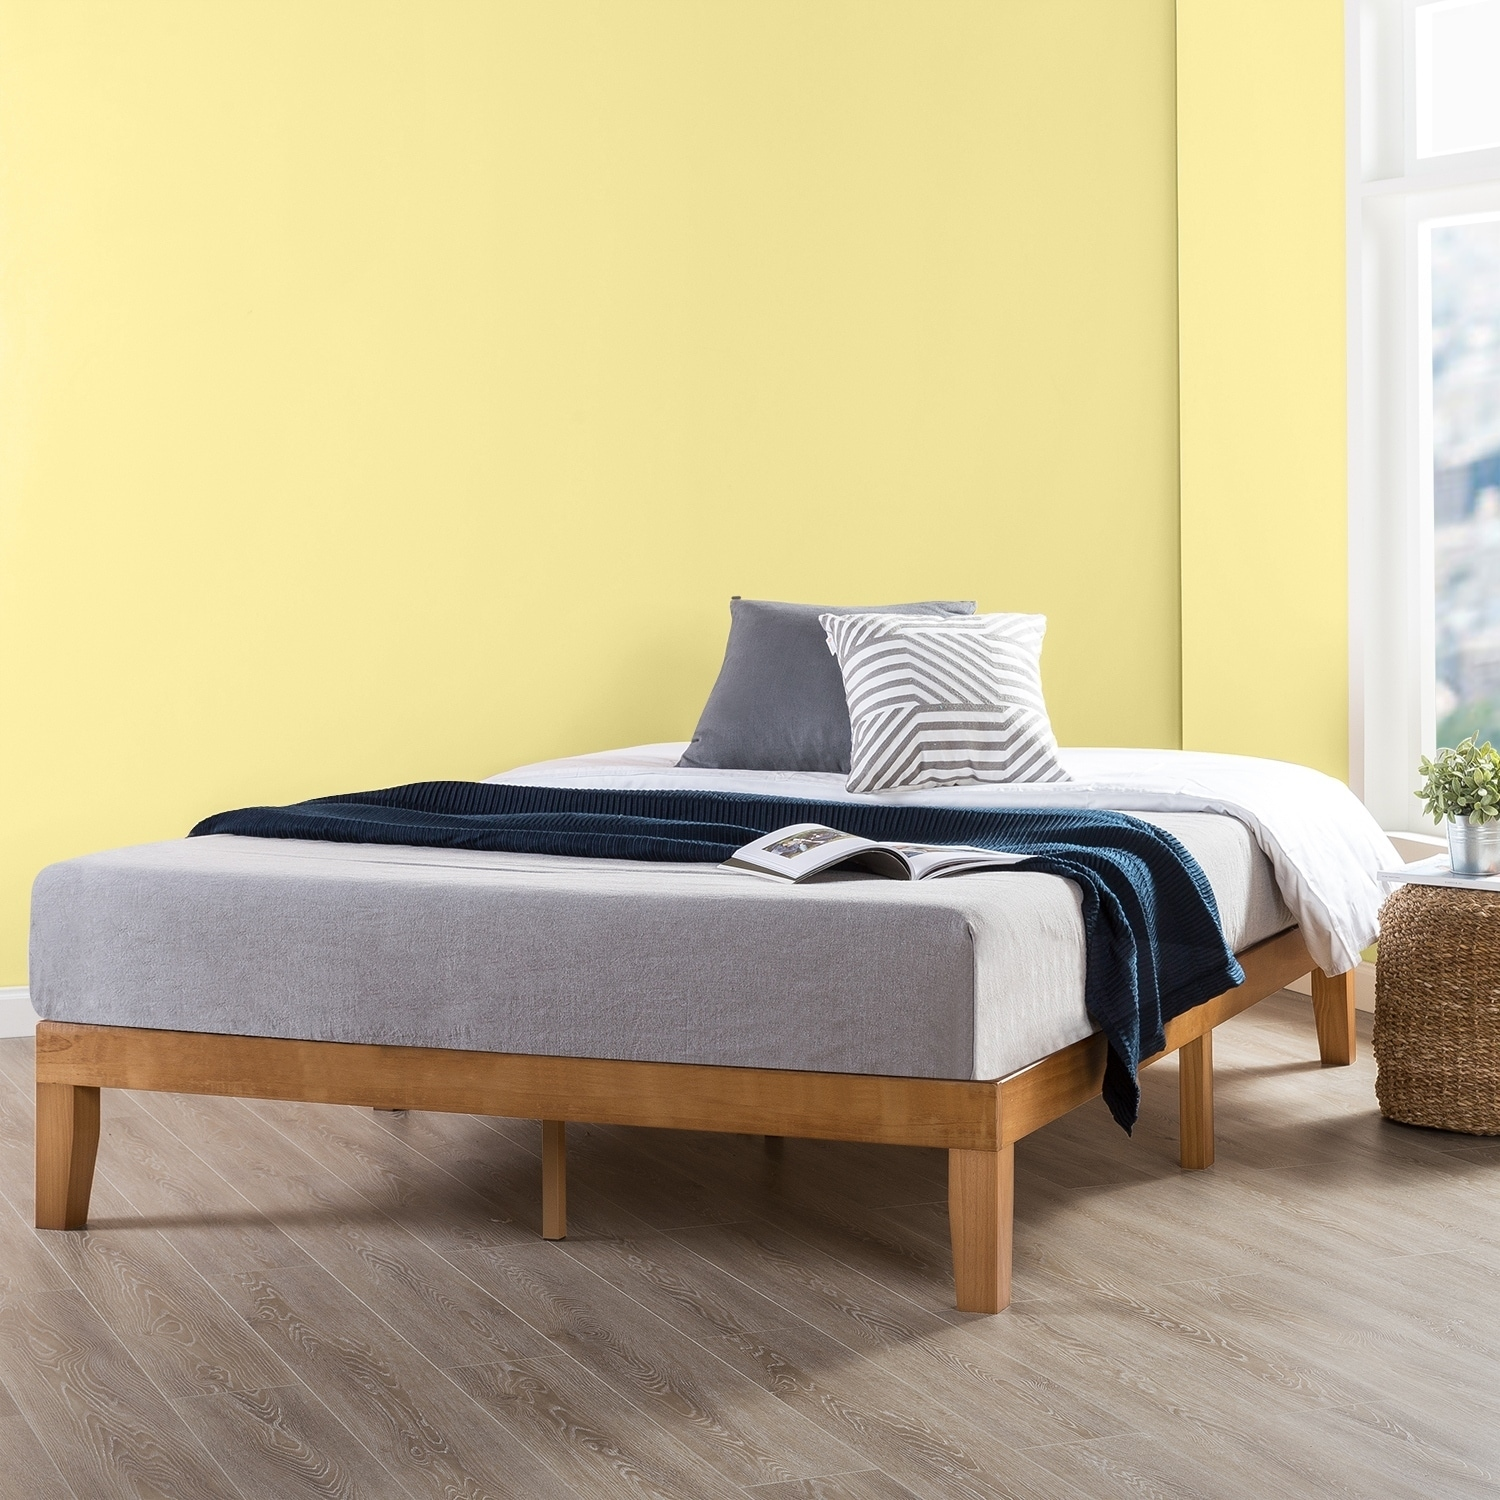 Picture of: Full Size 12 Inch Classic Solid Wood Platform Bed Frame Natural Crown Comfort On Sale Overstock 22378120